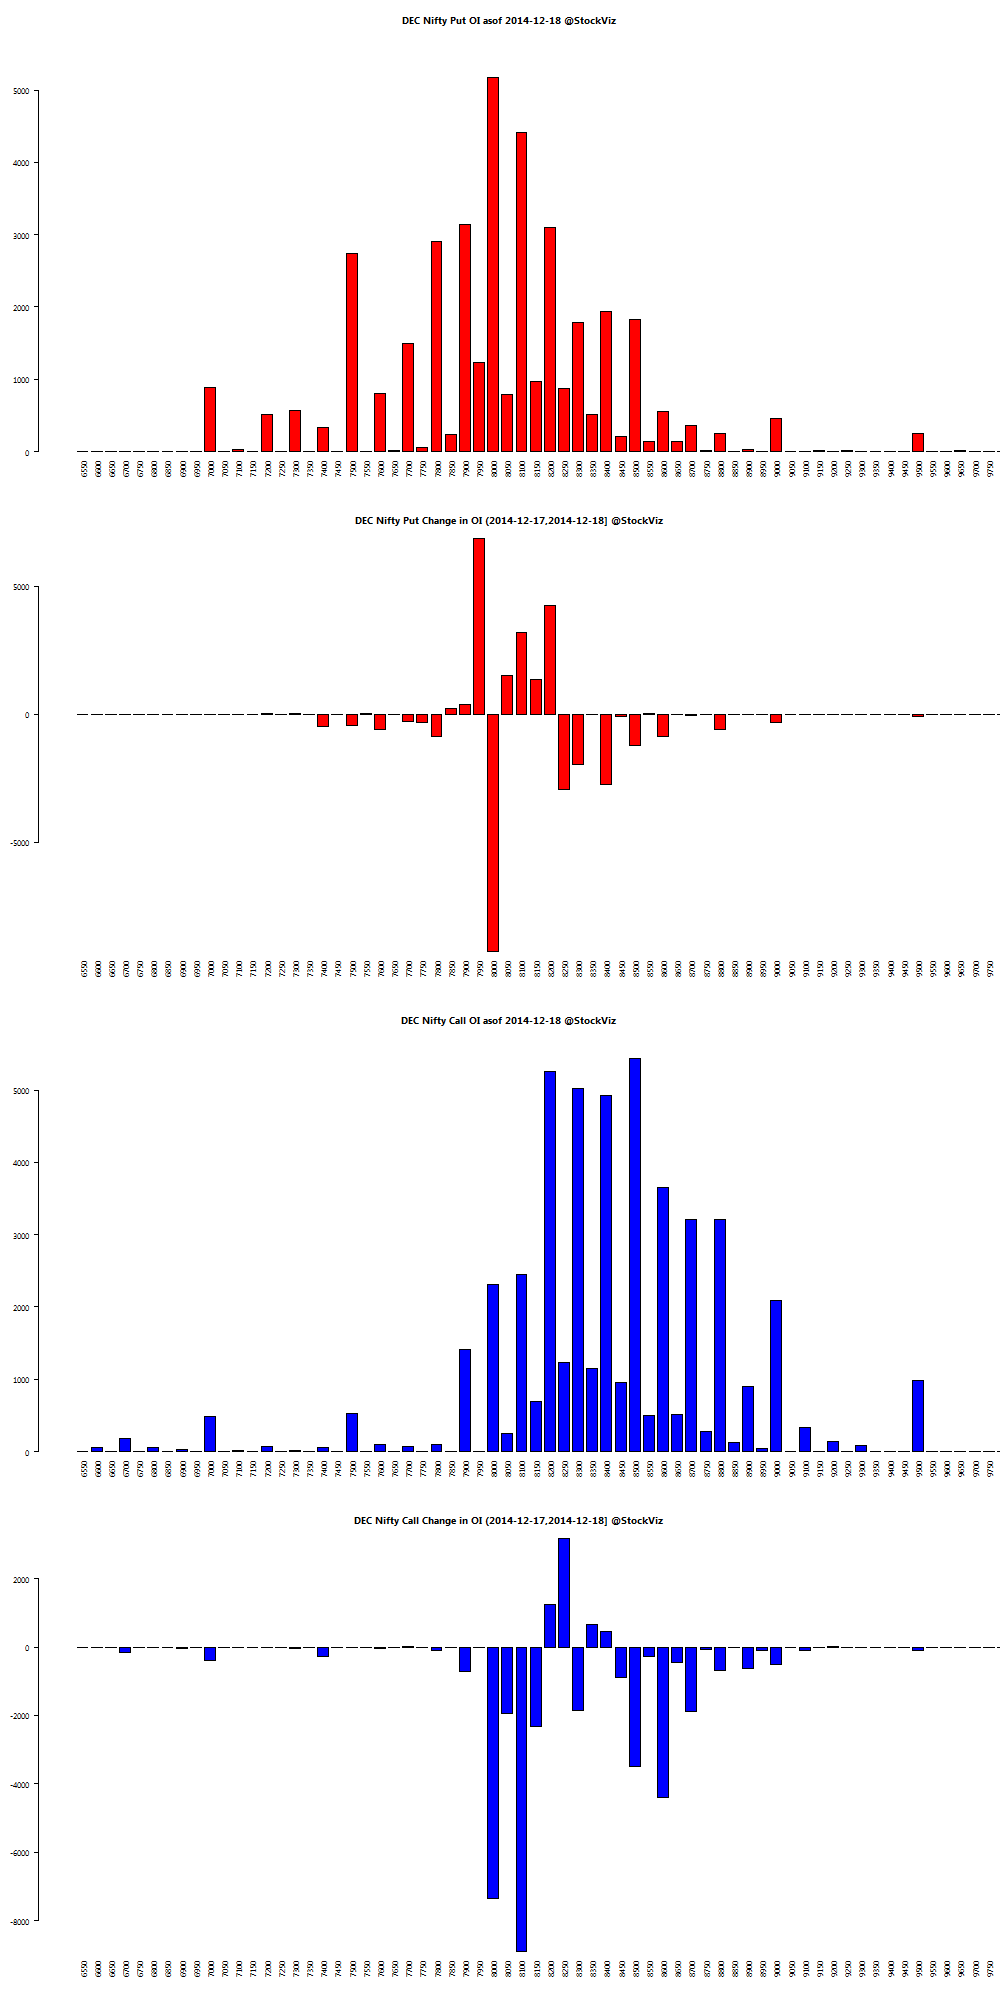 DEC NIFTY OI chart